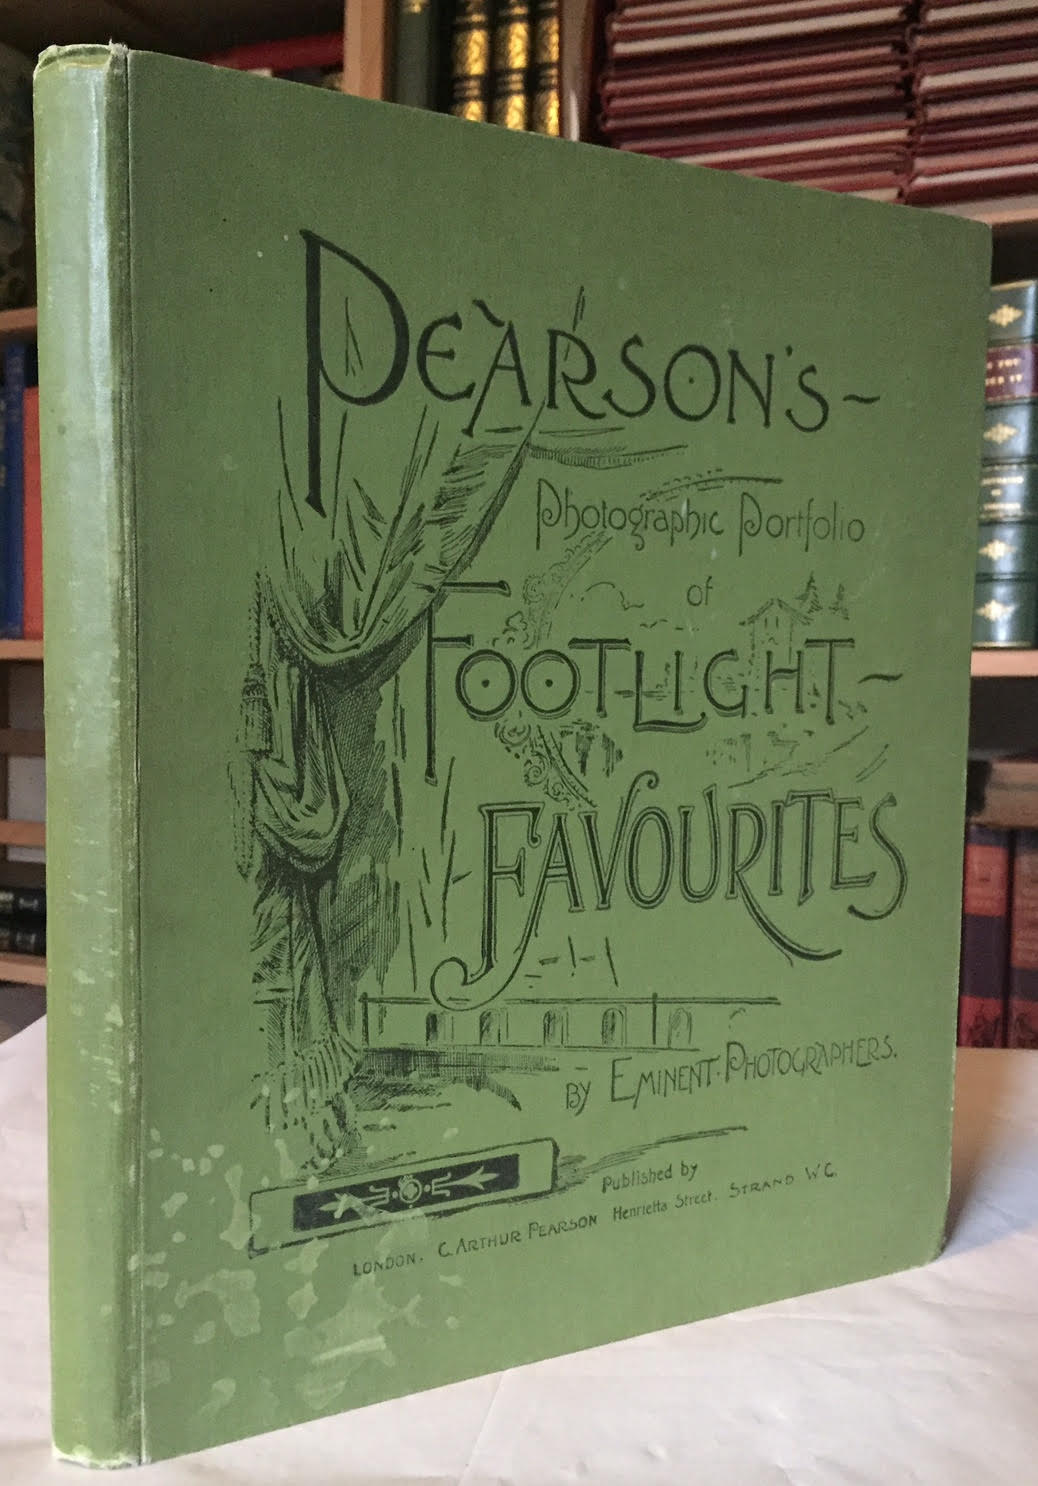 Image for Pearson's Photographic Portfolio  ; Footlight Favorites of Footlight Favourites by Eminent Photographers